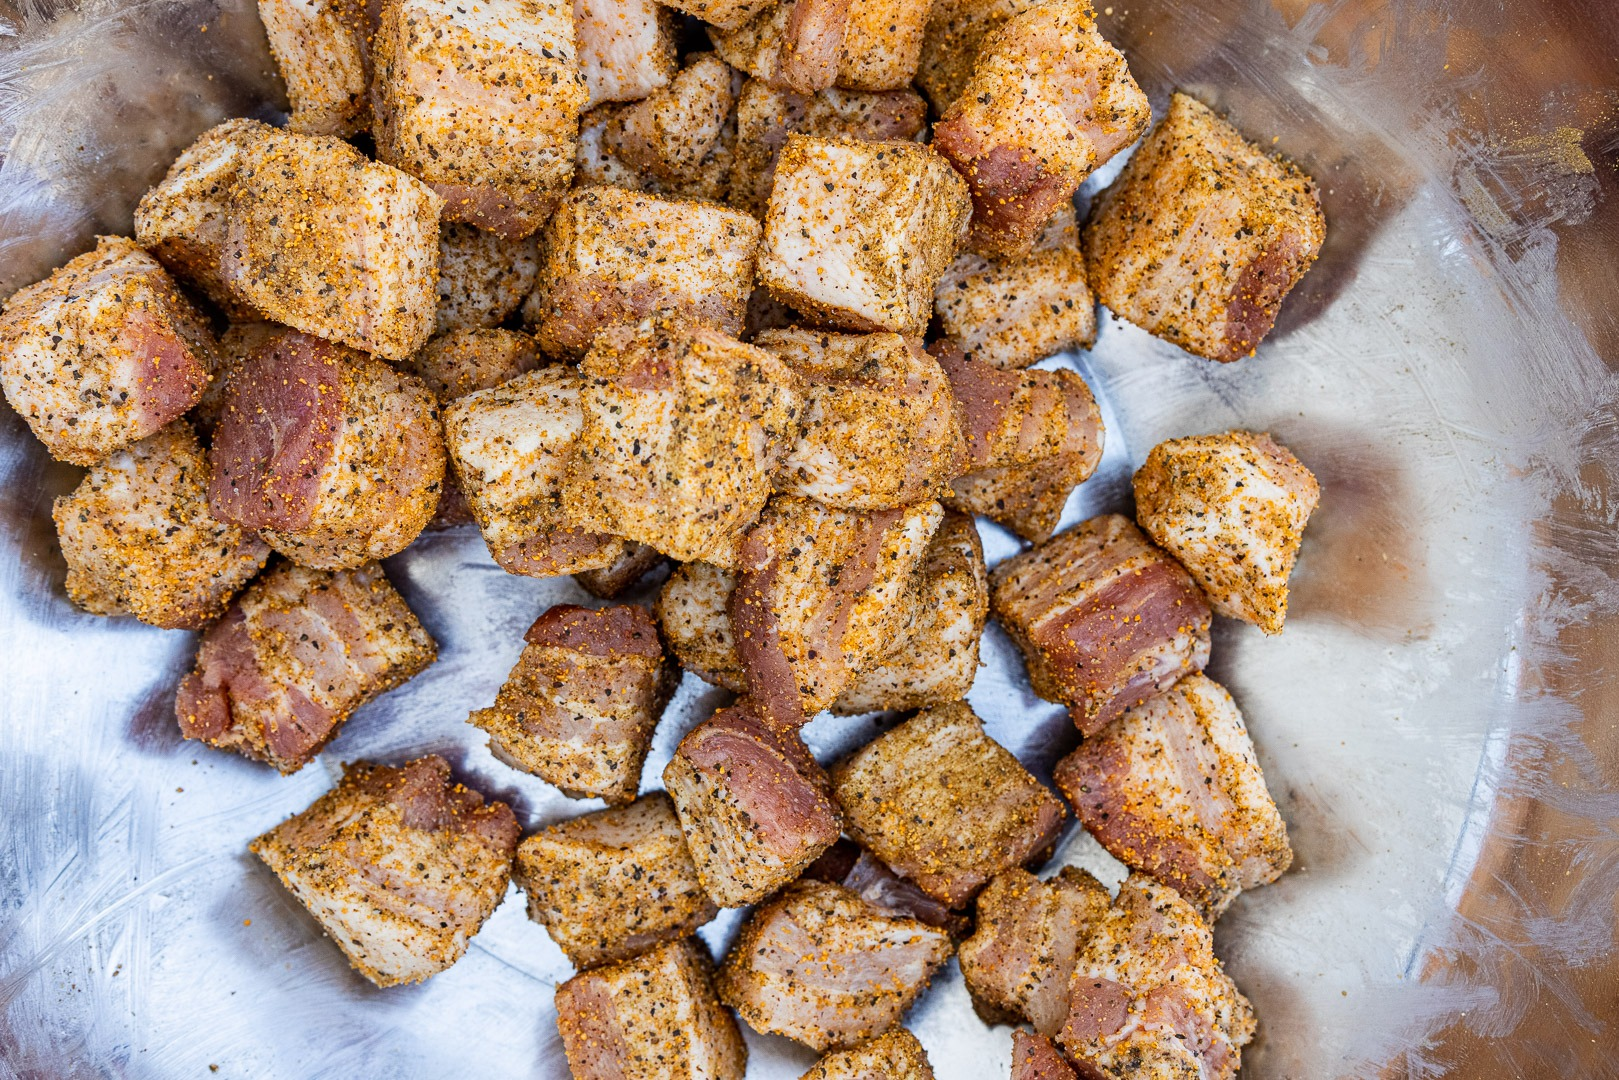 Pork belly cubes, well seasoned